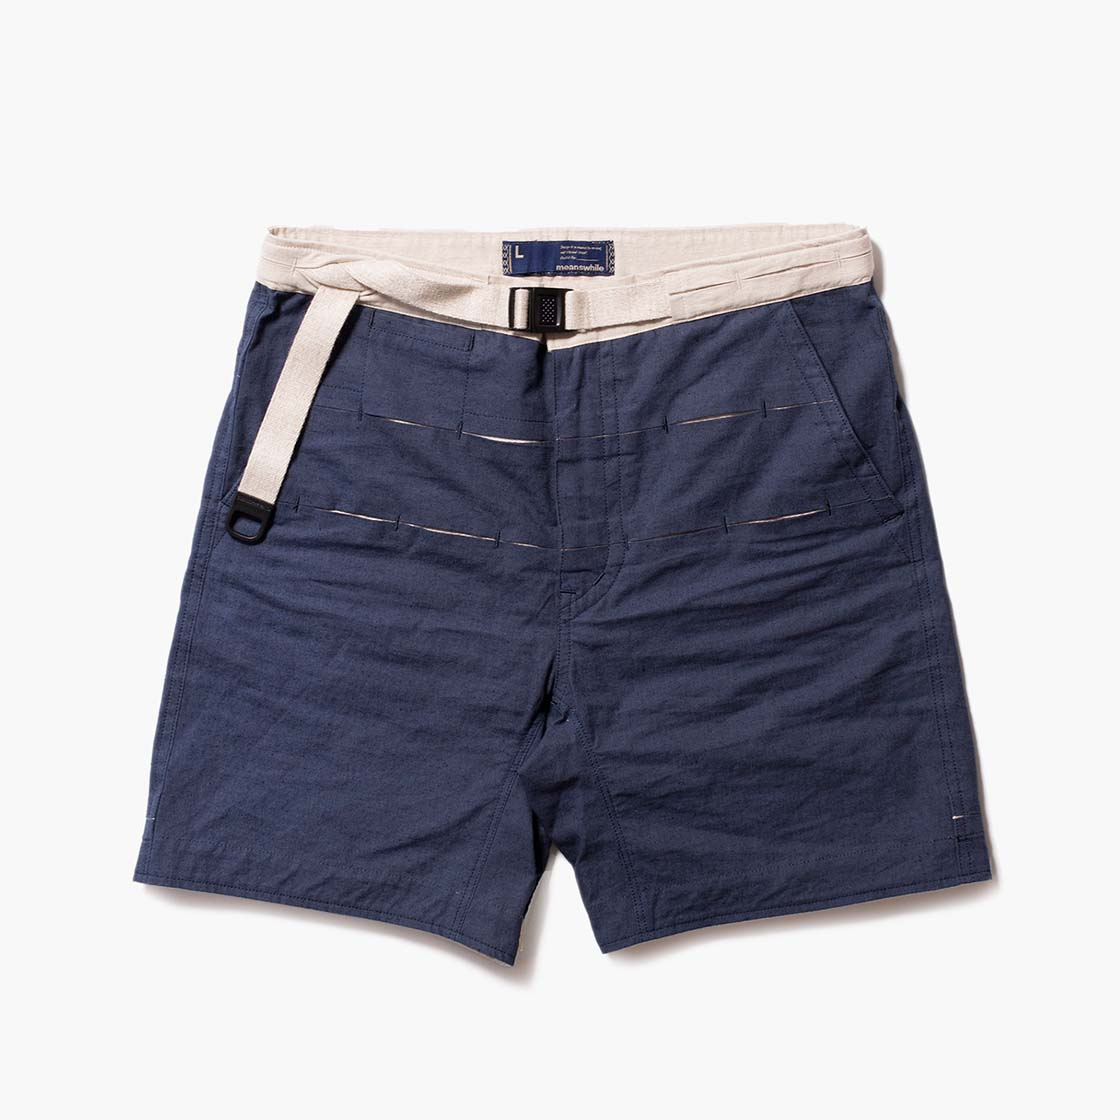 Cotton Linen Canvas Loop Tape Shorts